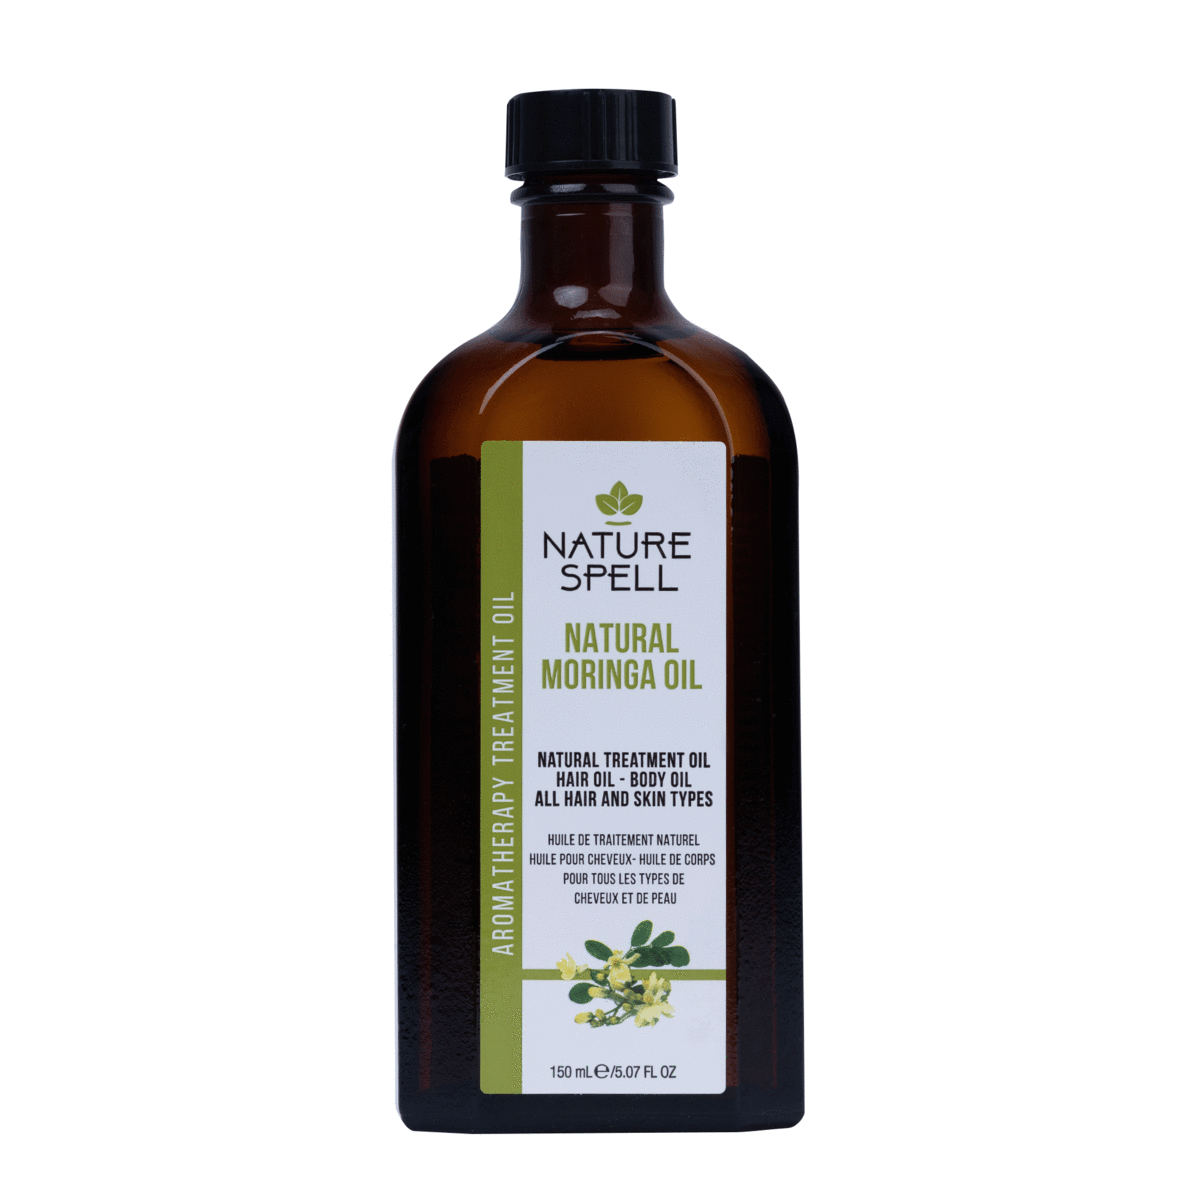 NATURE SPELL Moringa Oil For Hair & Body